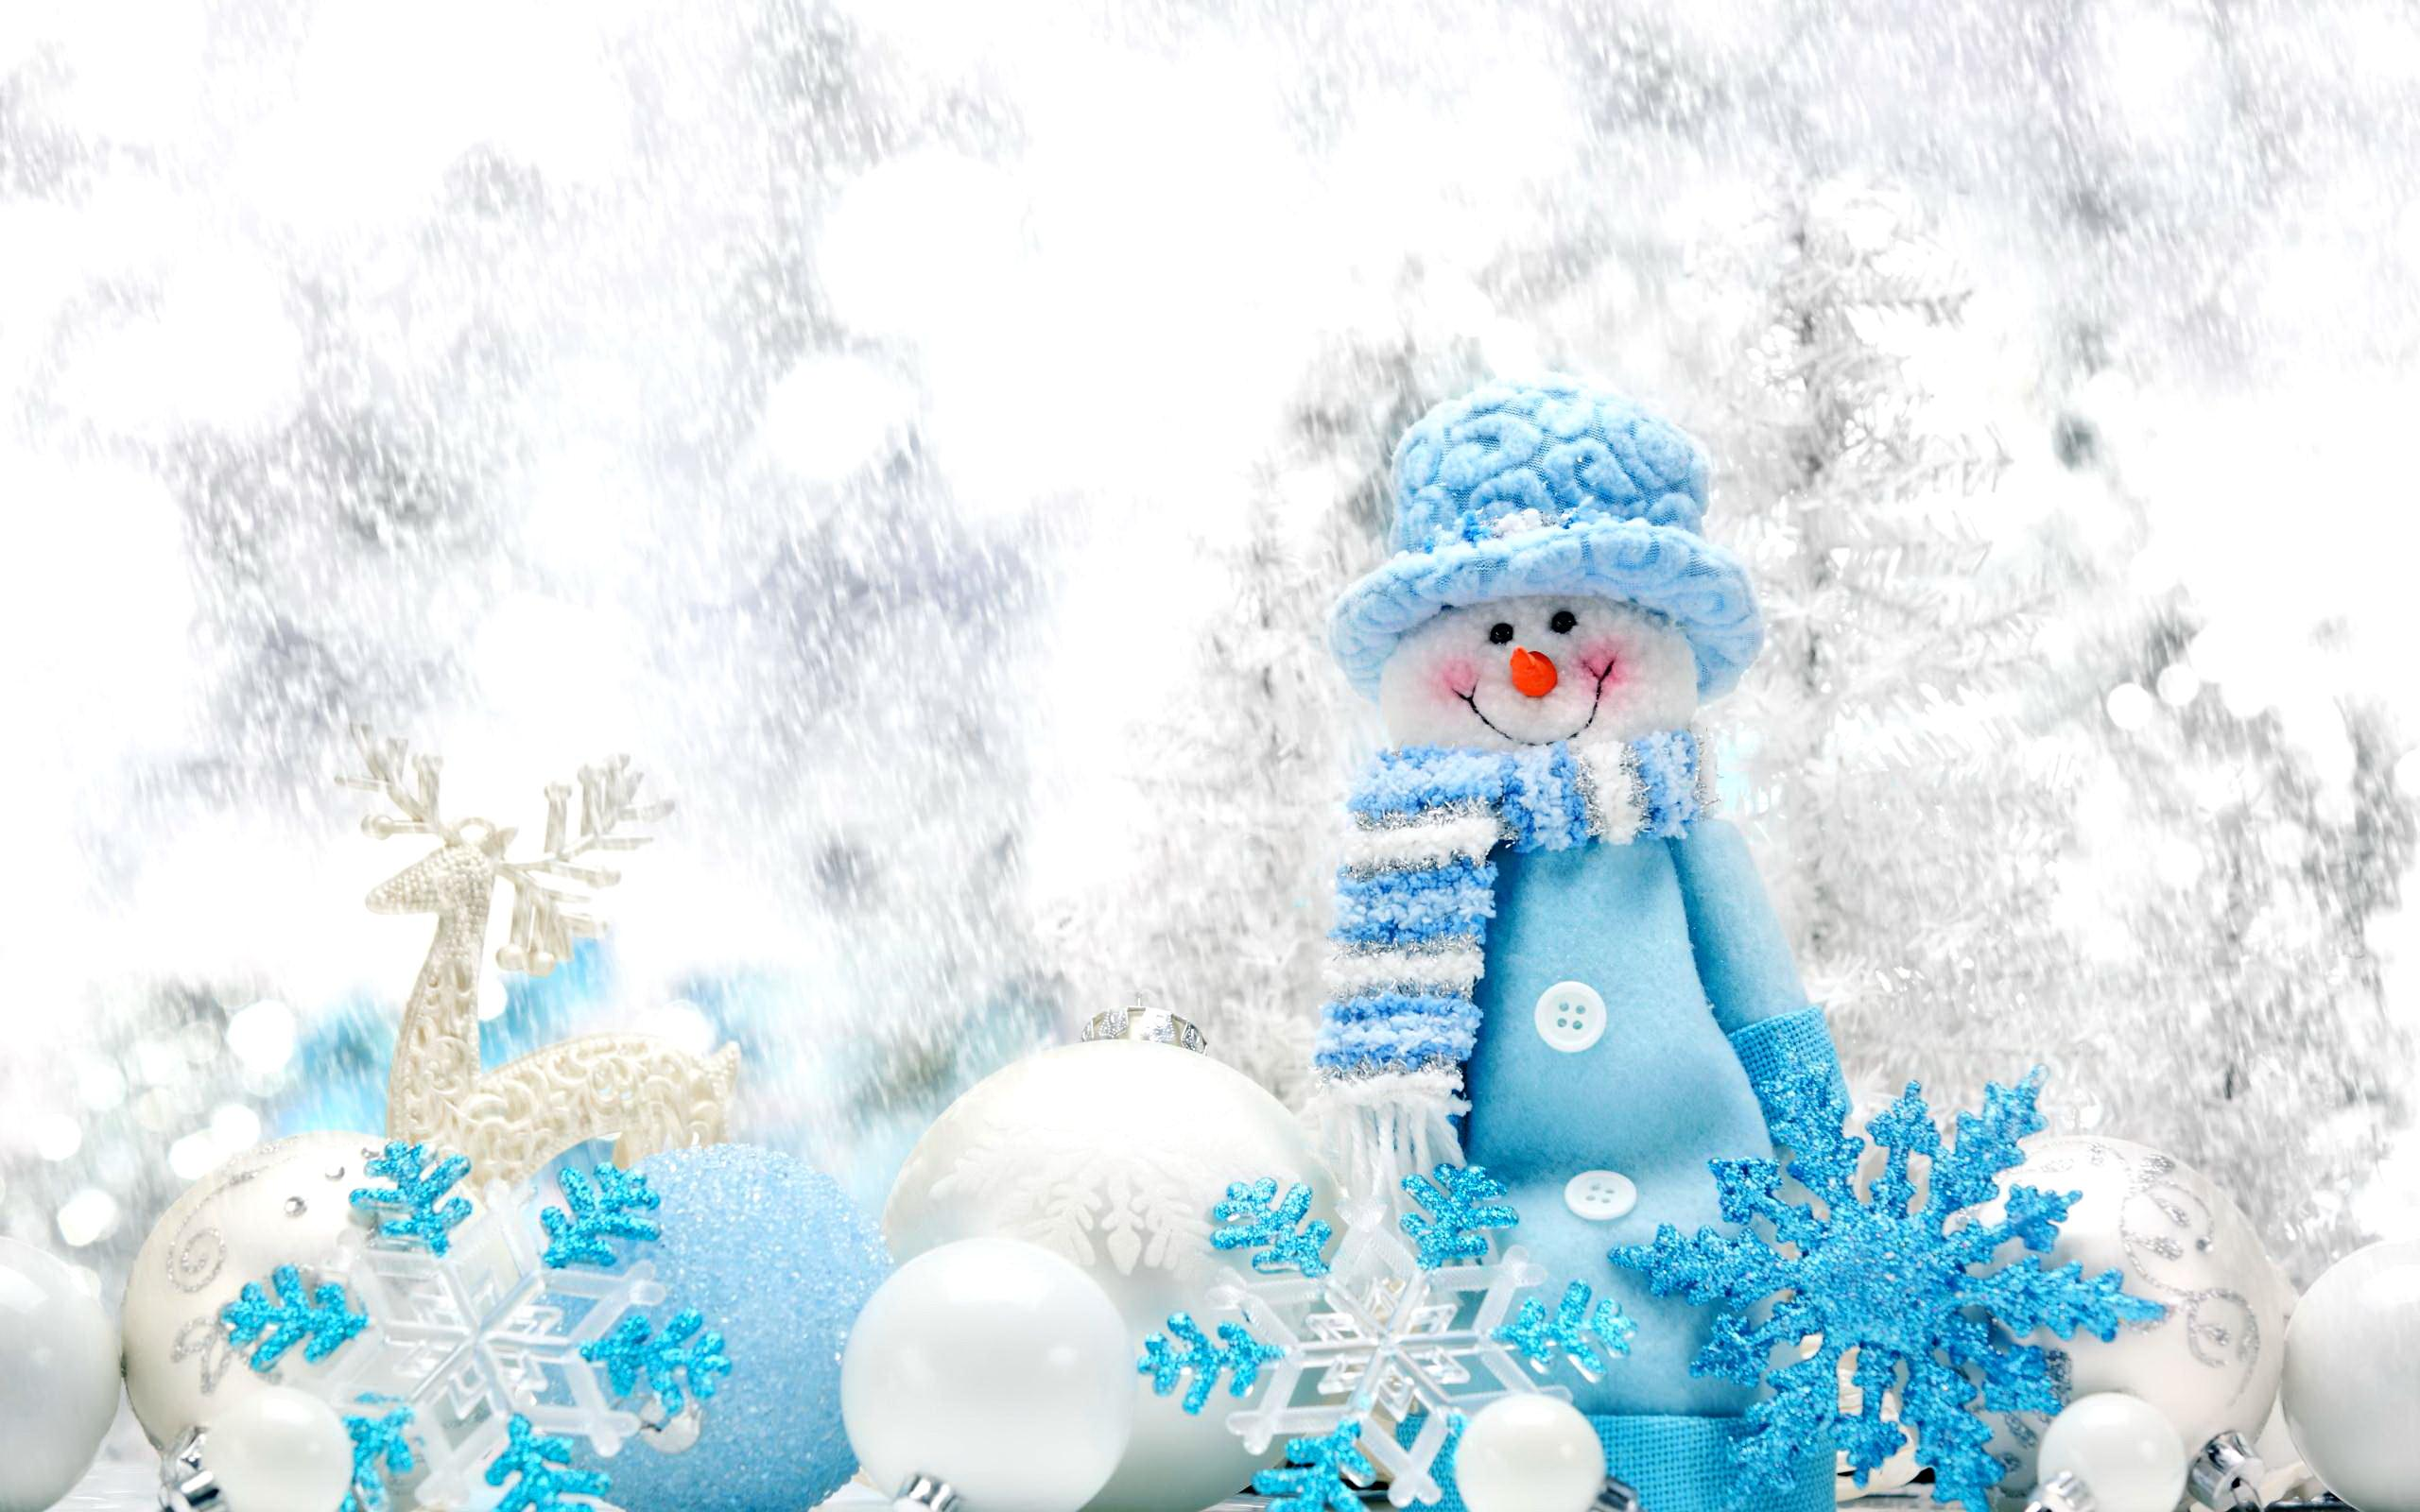 Snowman Wallpaper High Backgrounds